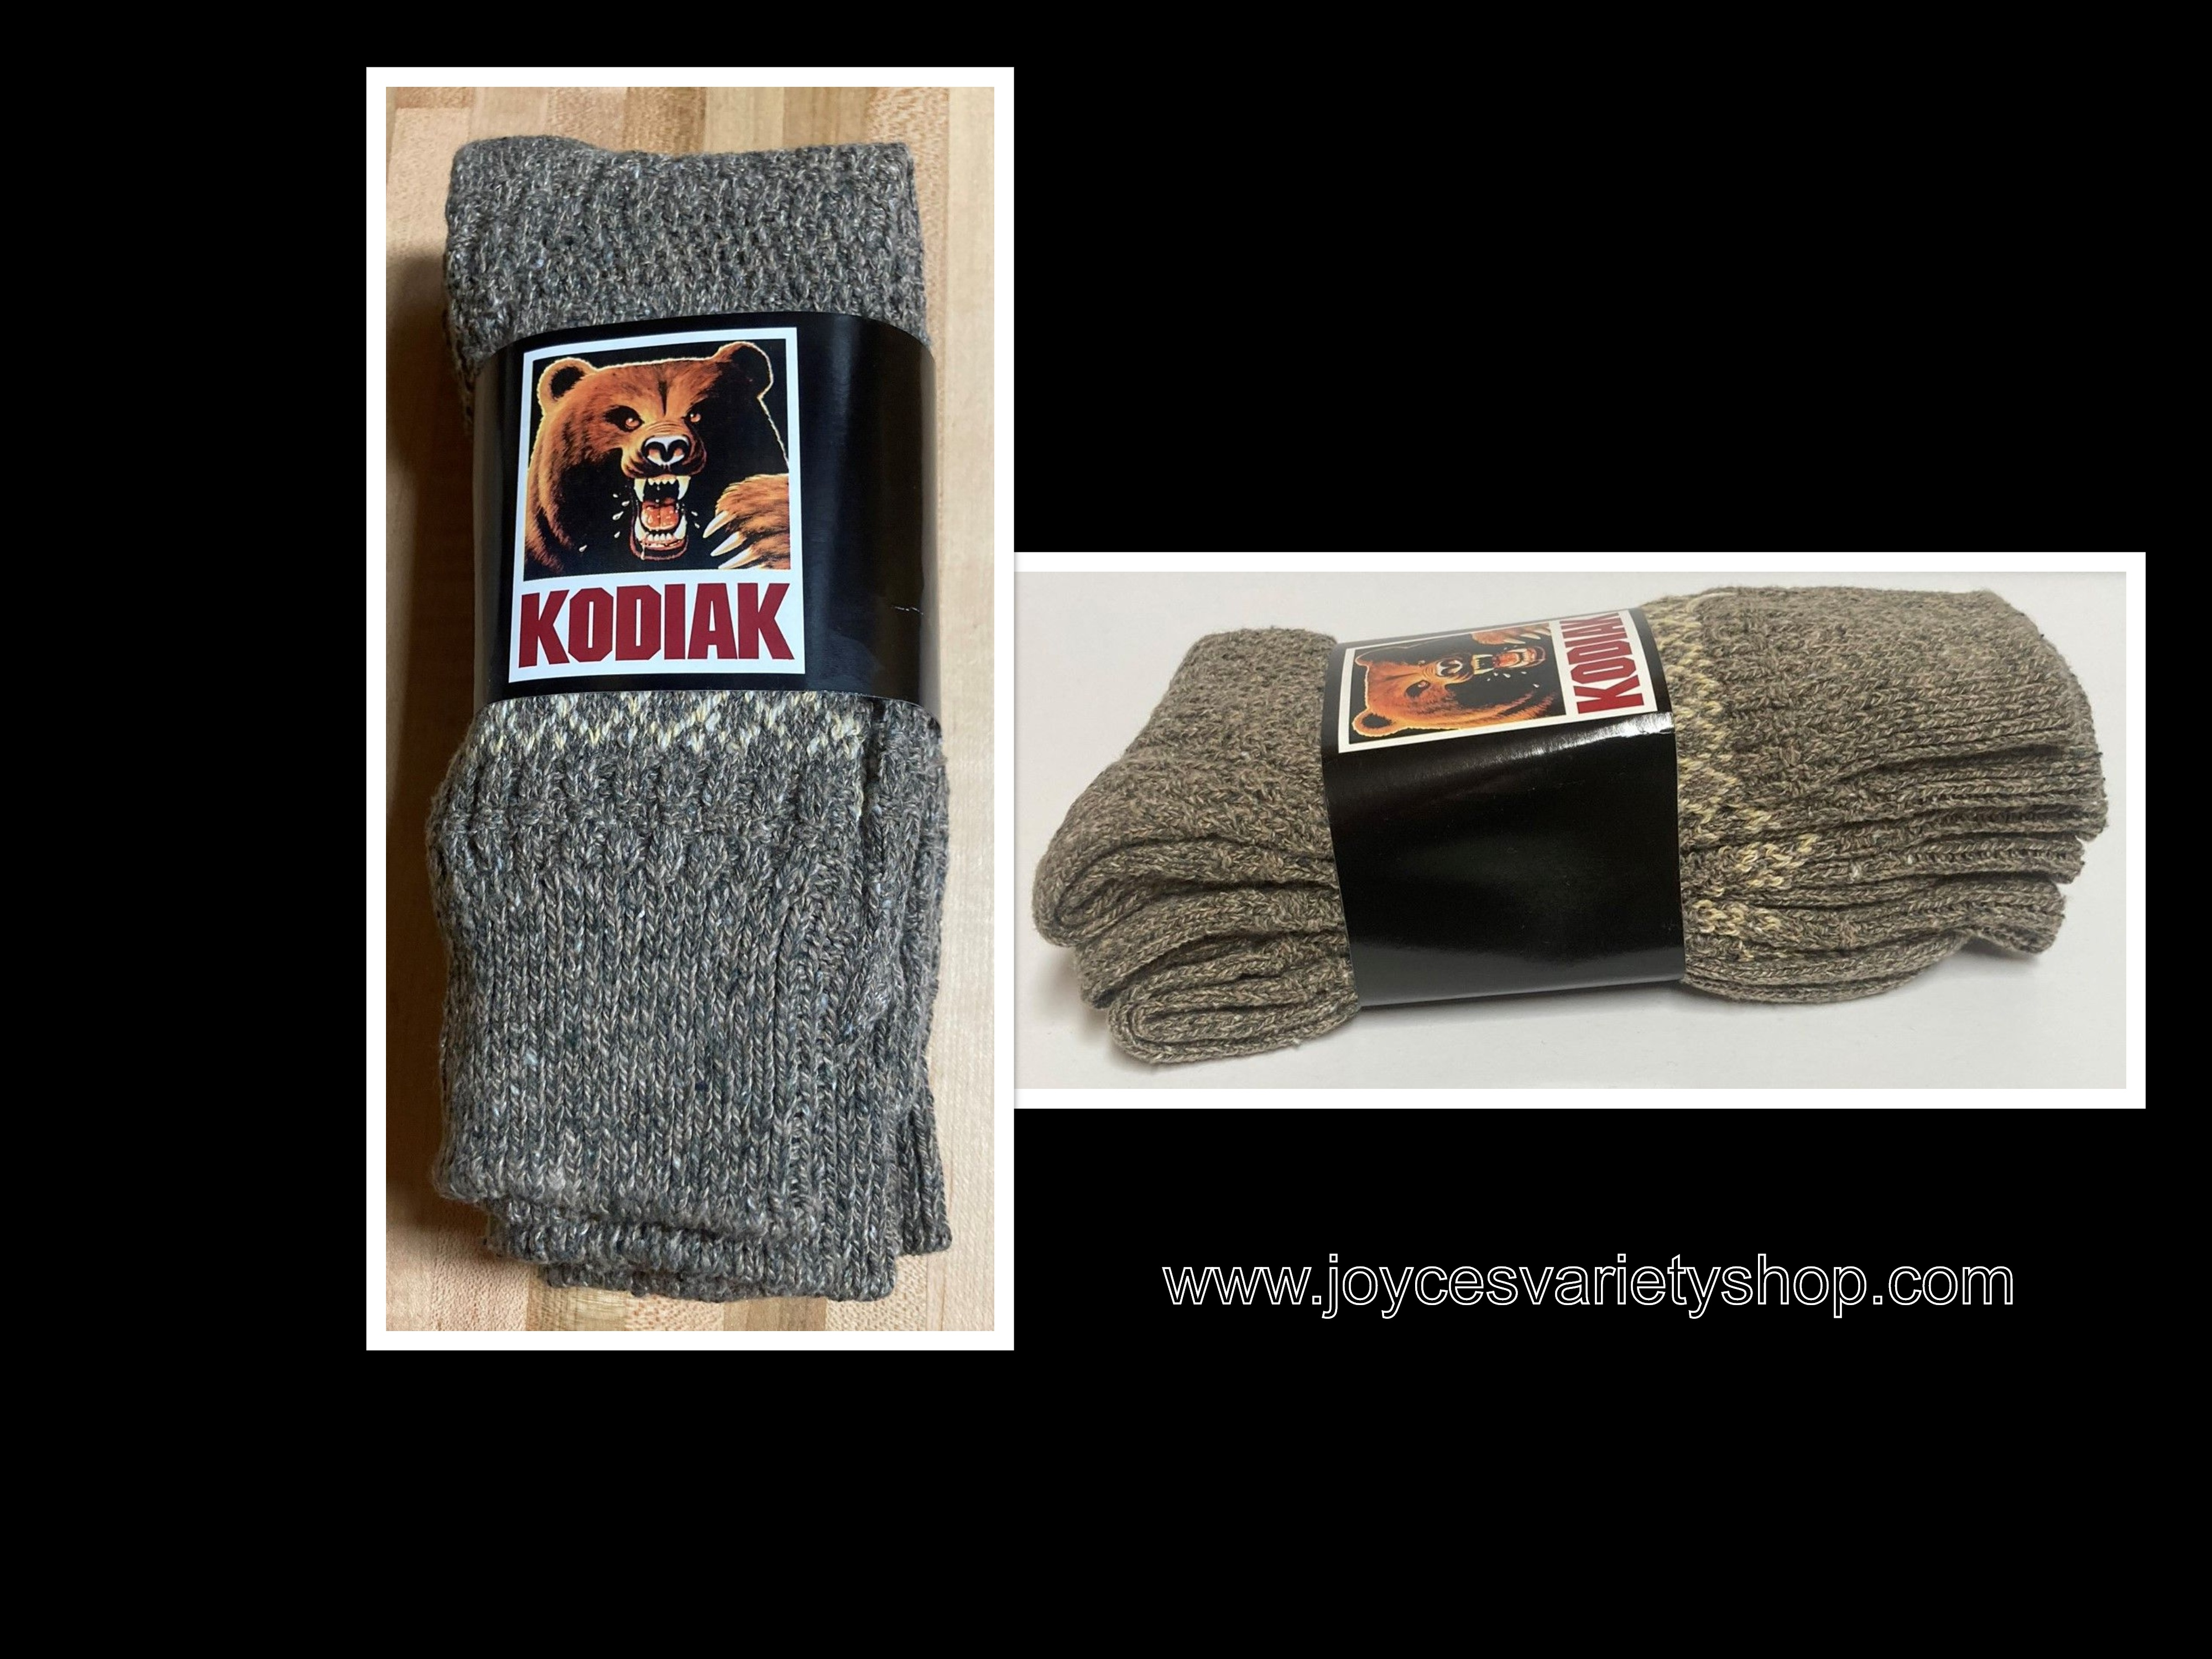 Kodiak Quality Work Socks Sz 9-11 Gray 3 Pack